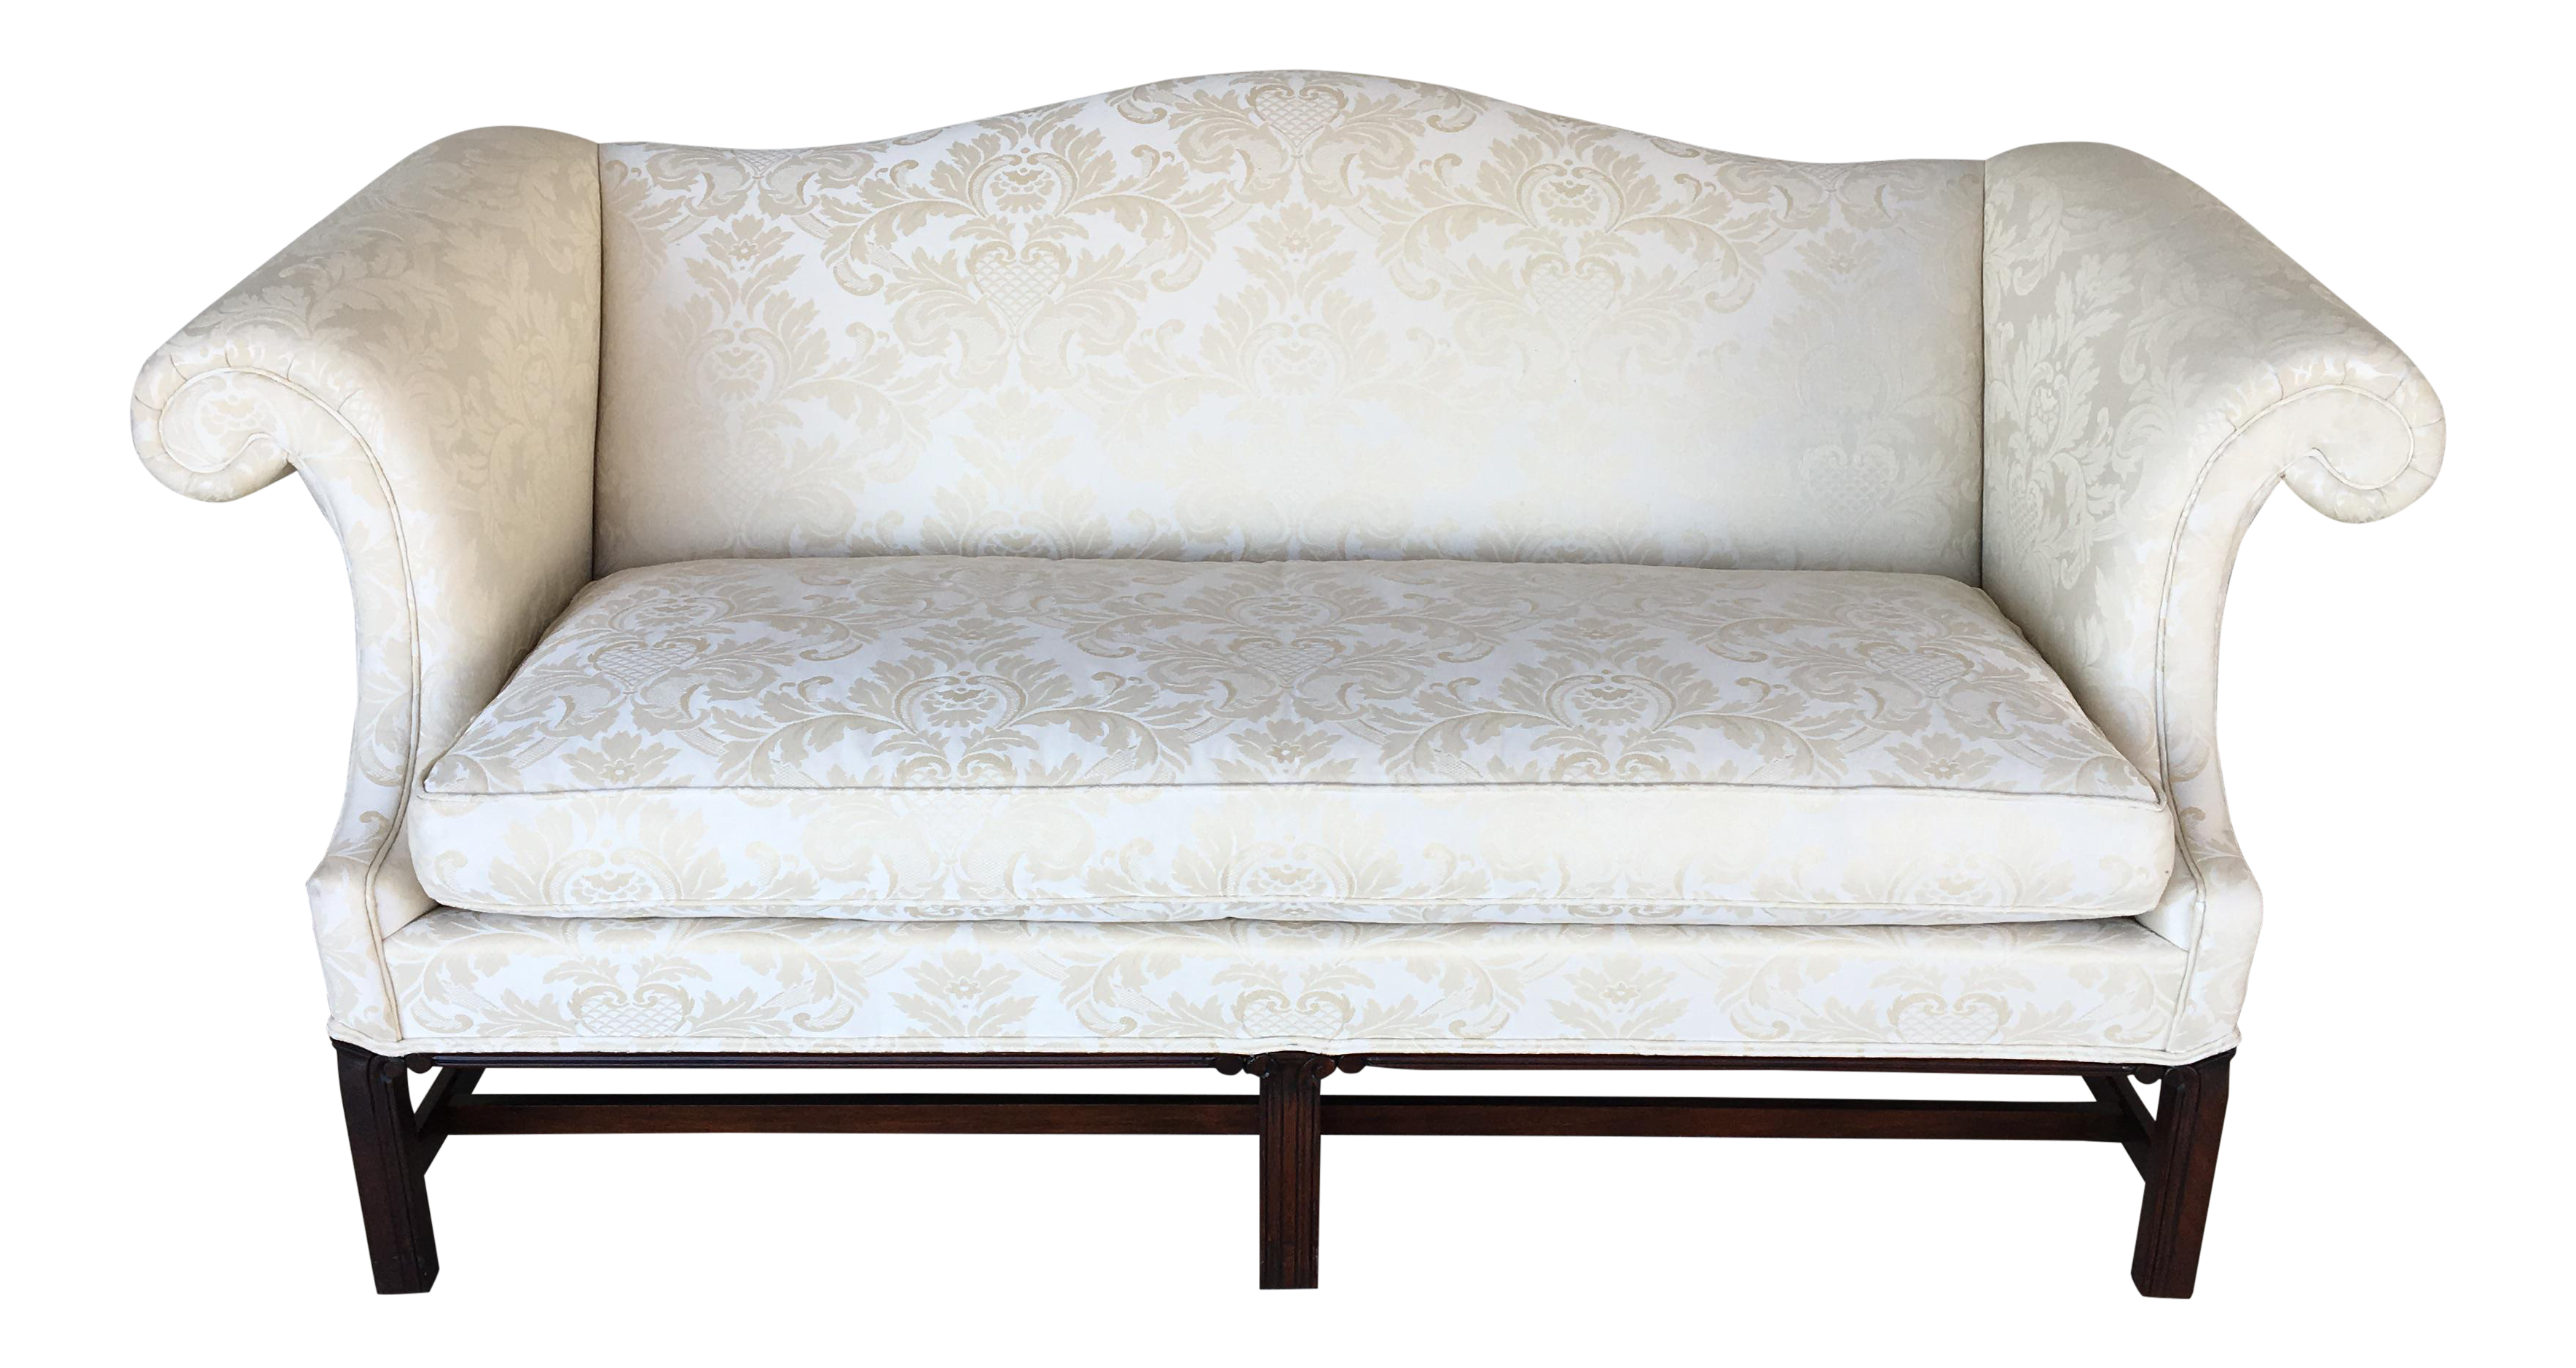 Hickory Chair Chippendale Style Formal Camel Back Sofa